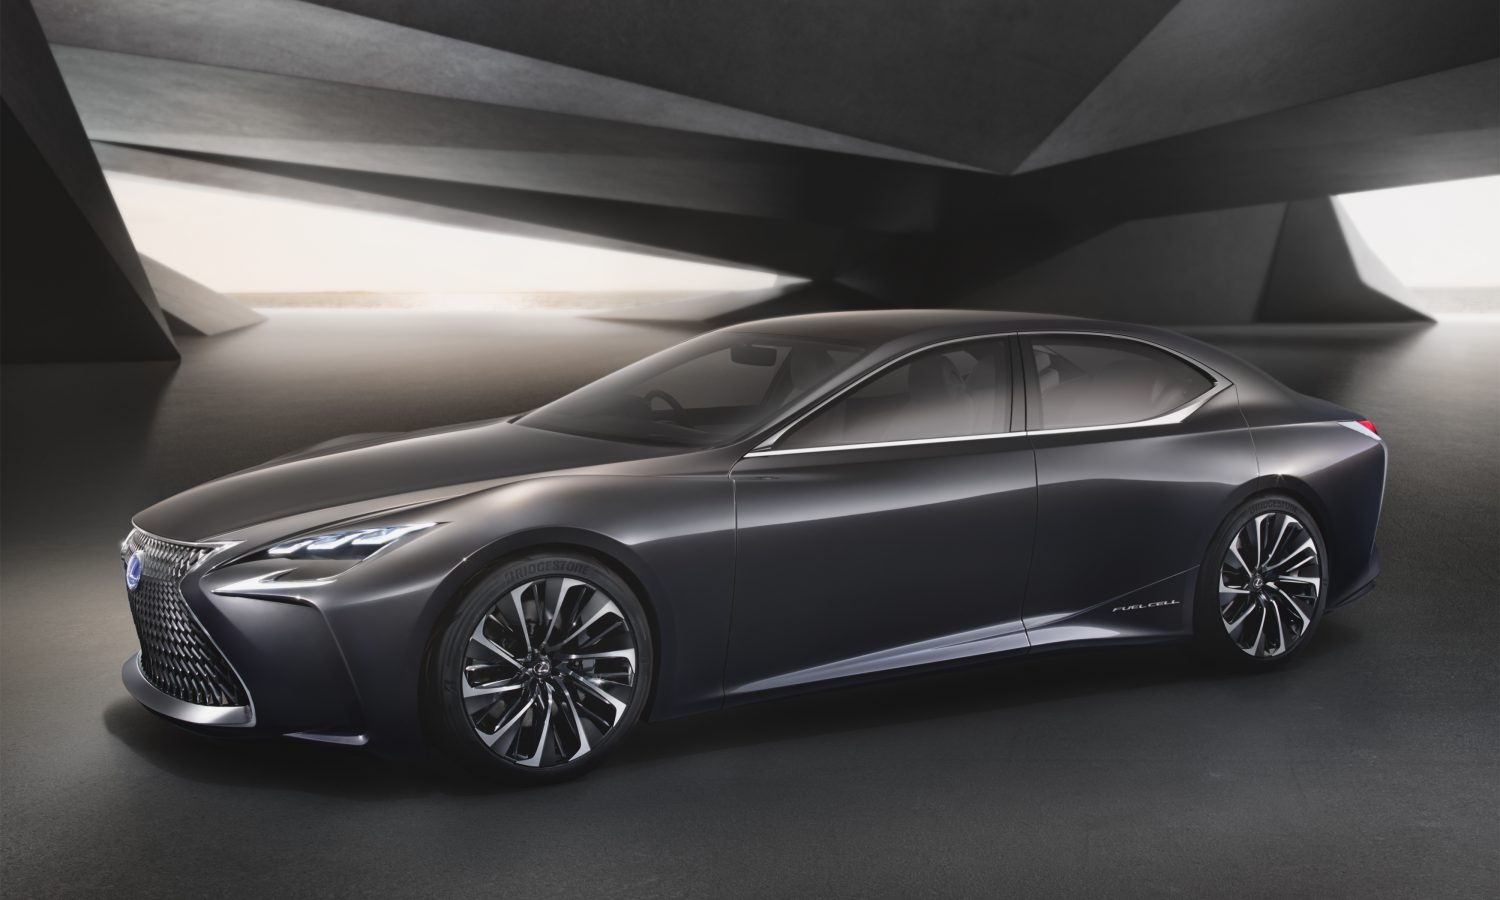 Lexus LF-FC Flagship Concept Revealed at the Tokyo Motor Show